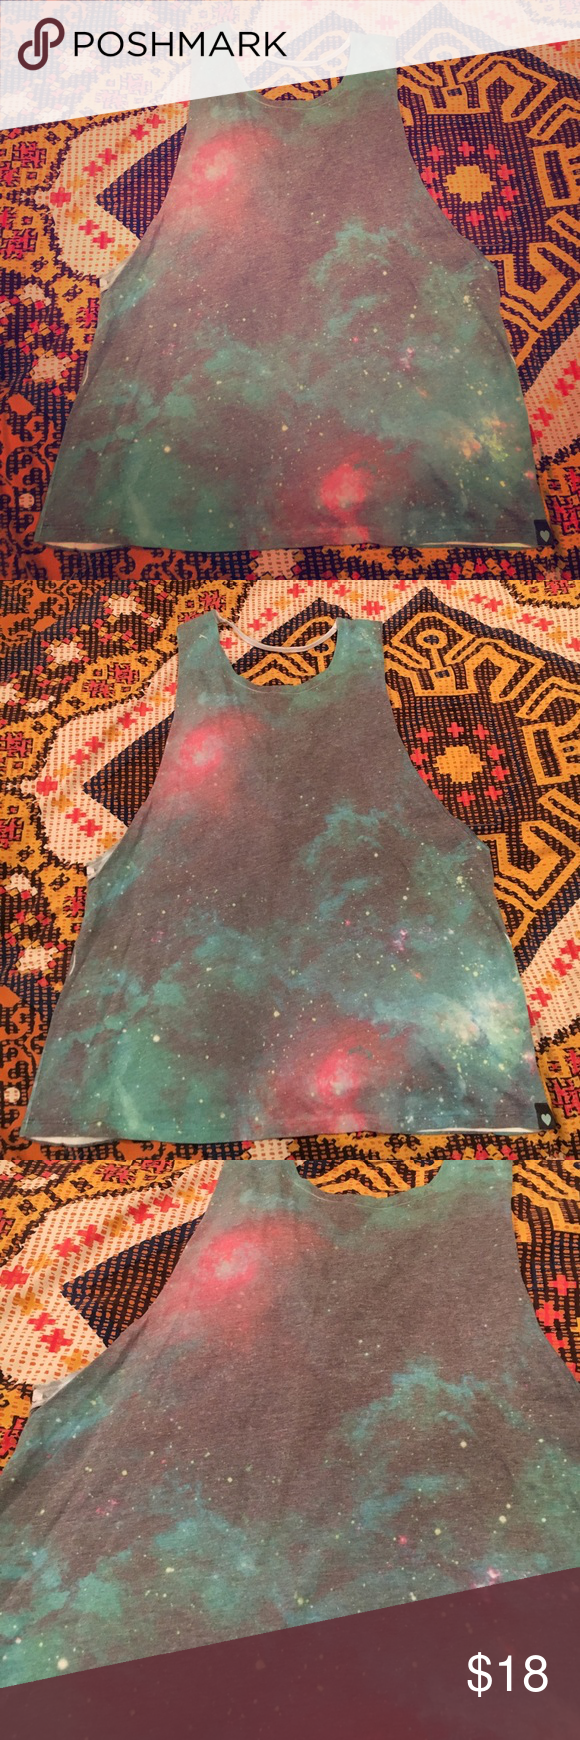 Kendall & Kylie Cosmic Print Muscle Tee Used - W/O tags. Got this tank top awhile back at PacSun ☀️ and absolutely LOVED everything about it 😍!! Super comfortable top, I just never wear it anymore 😭. Used and loved, but with NO signs of wear - in excellent condition! Price negotiable. Just offer! Kendall & Kylie Tops Muscle Tees